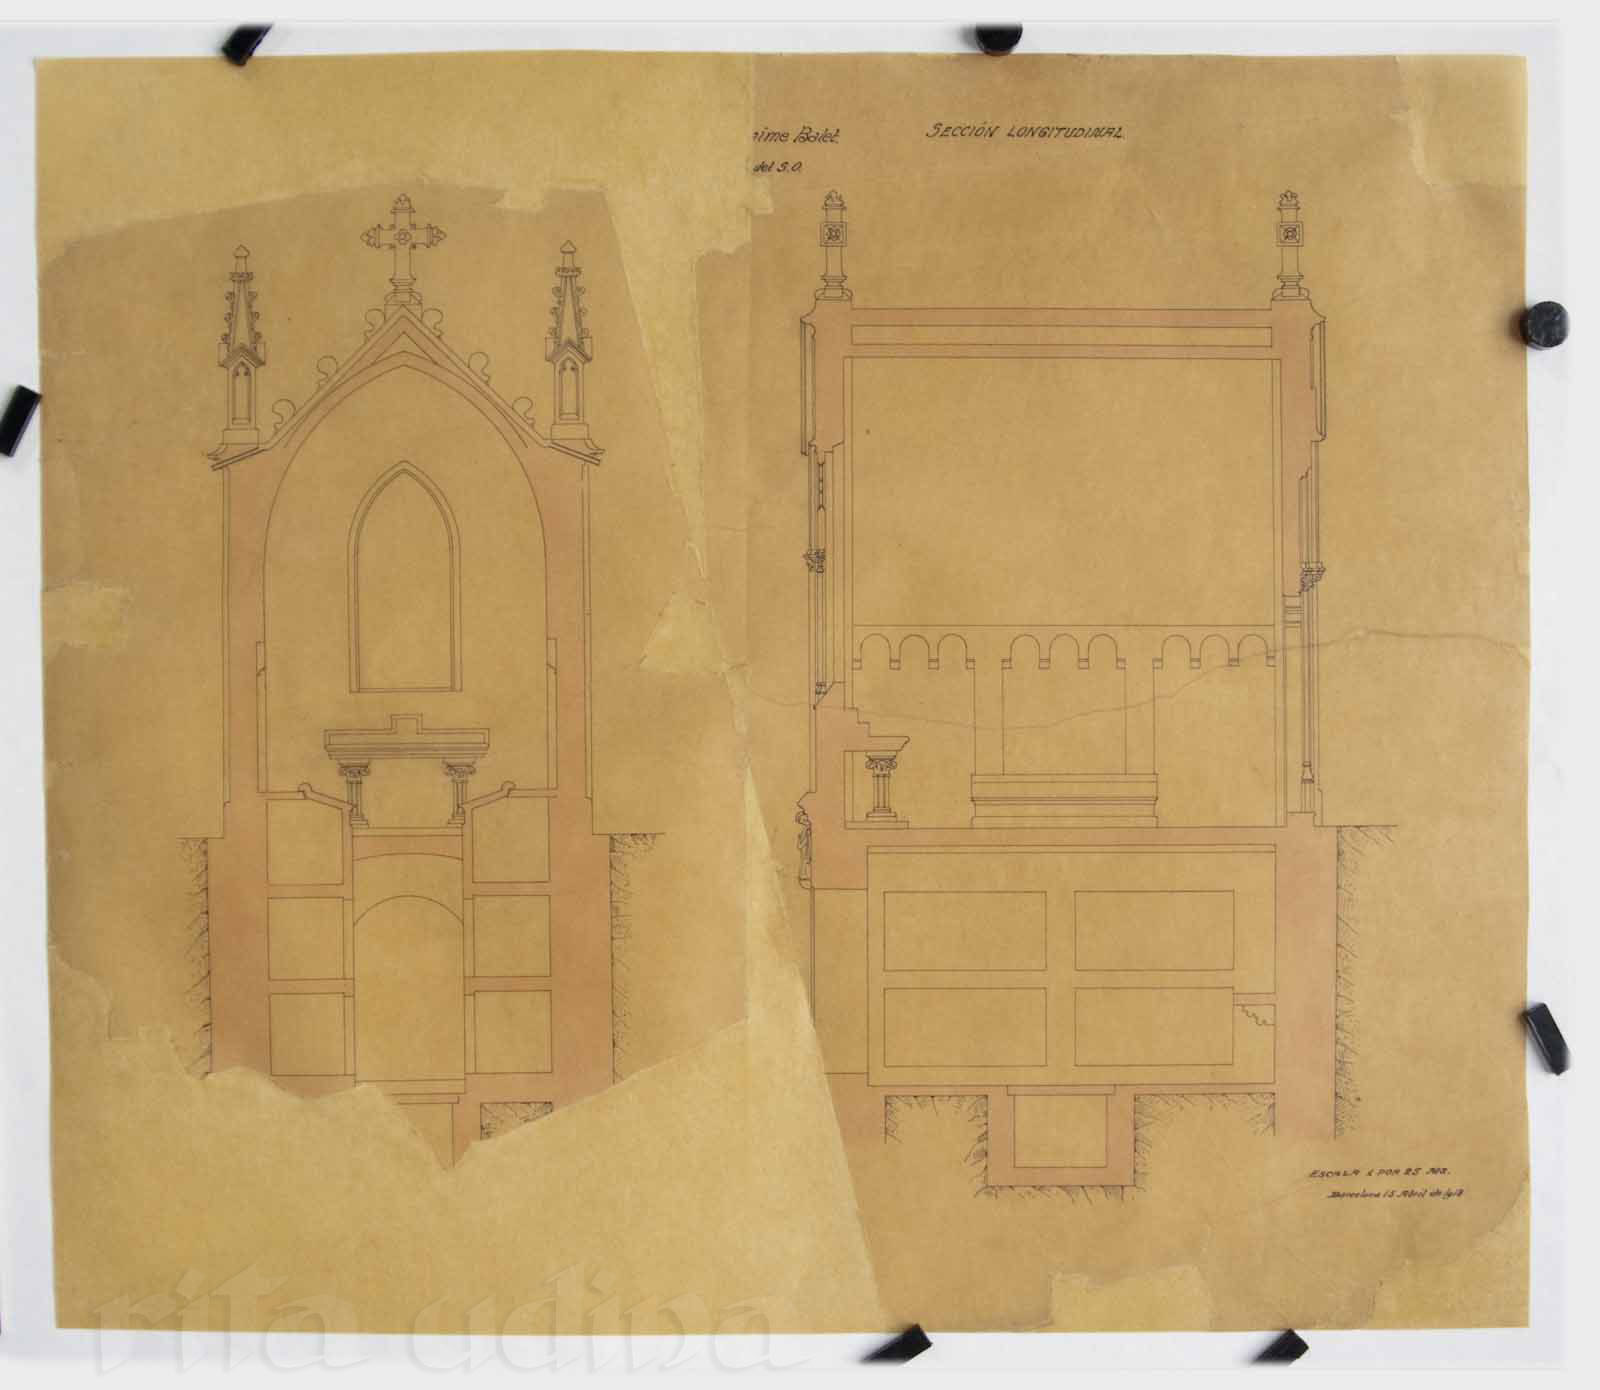 tracing paper consevation rita udina paper books conservation